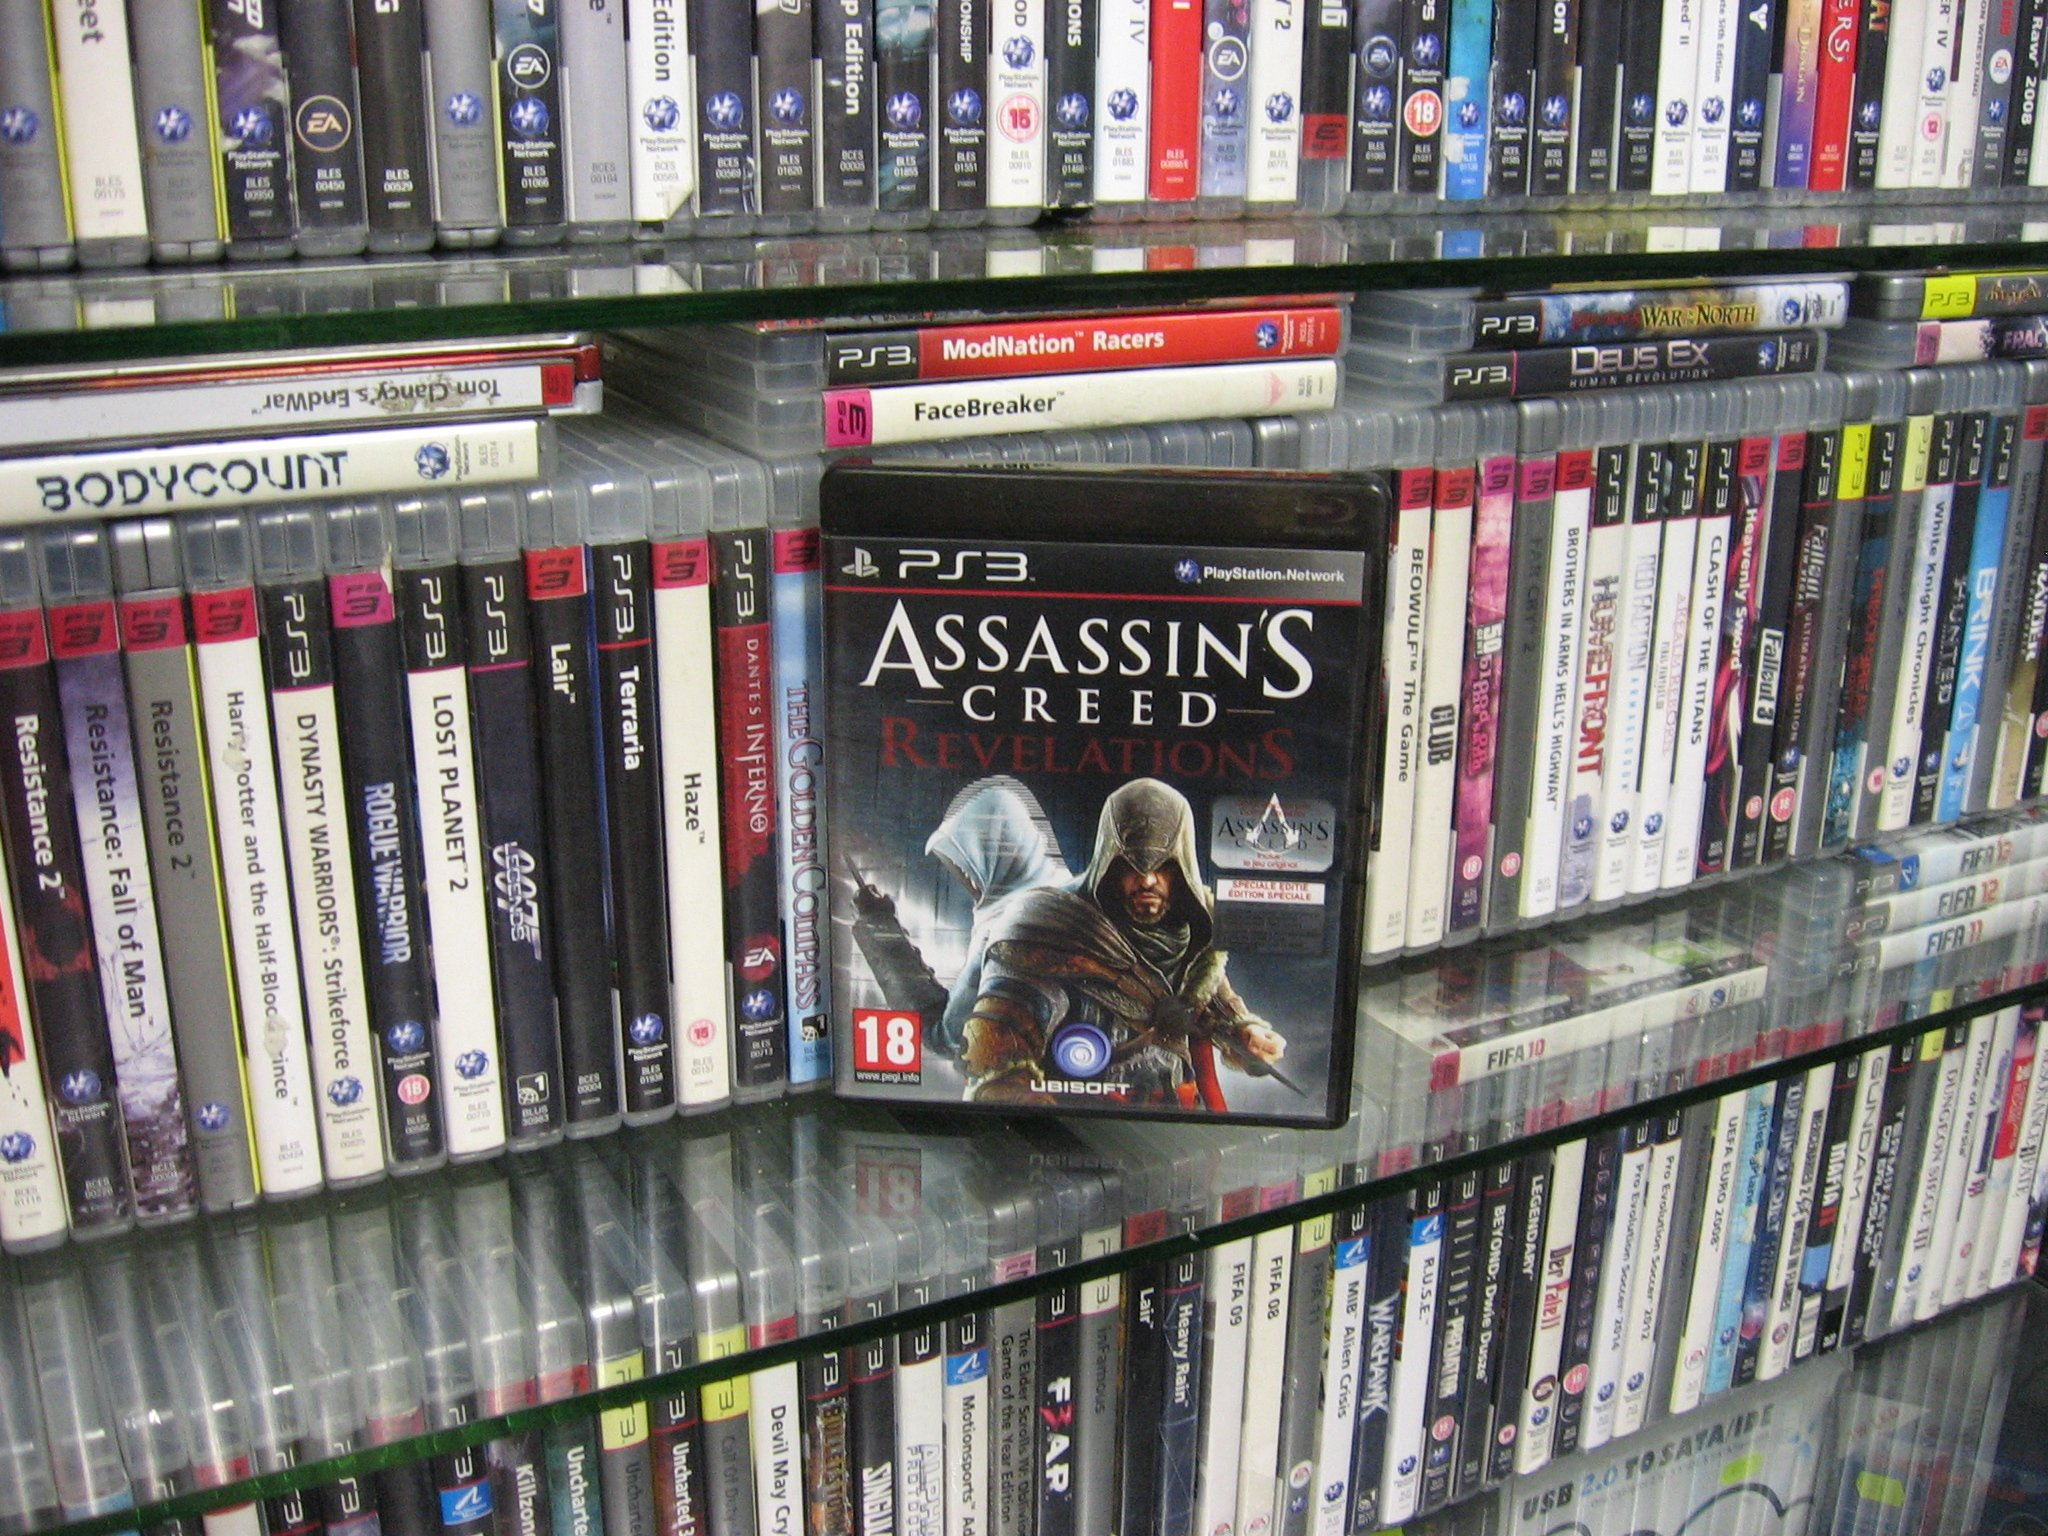 Assassin's Creed Revelations - GRA Ps3 - Opole 0021